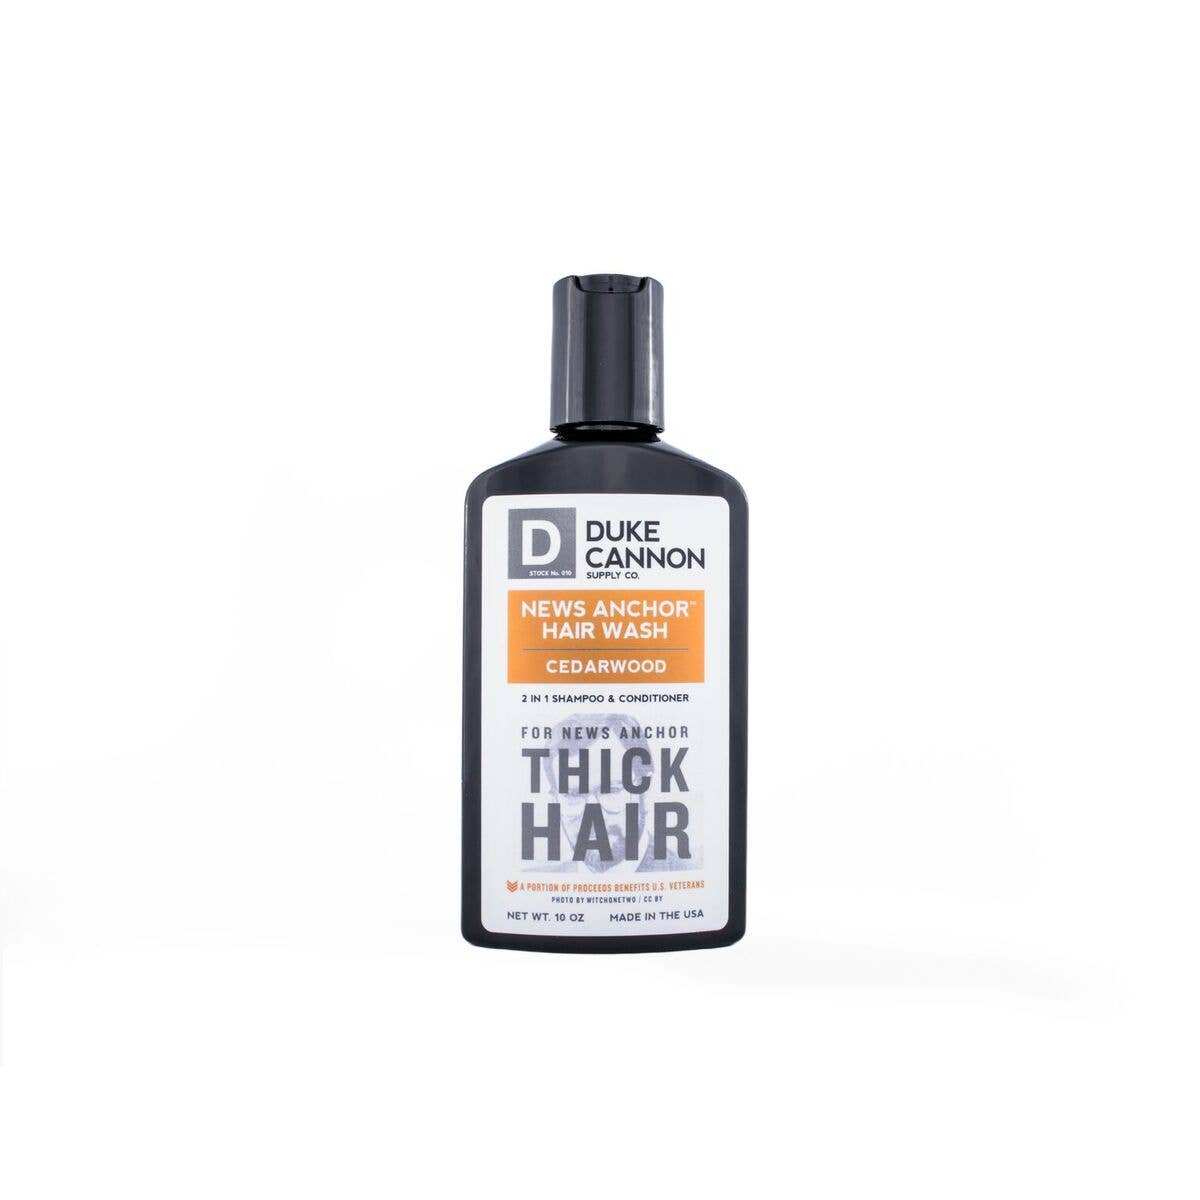 Duke Cannon - News Anchor 2-in-1 Hair Wash - Cedarwood